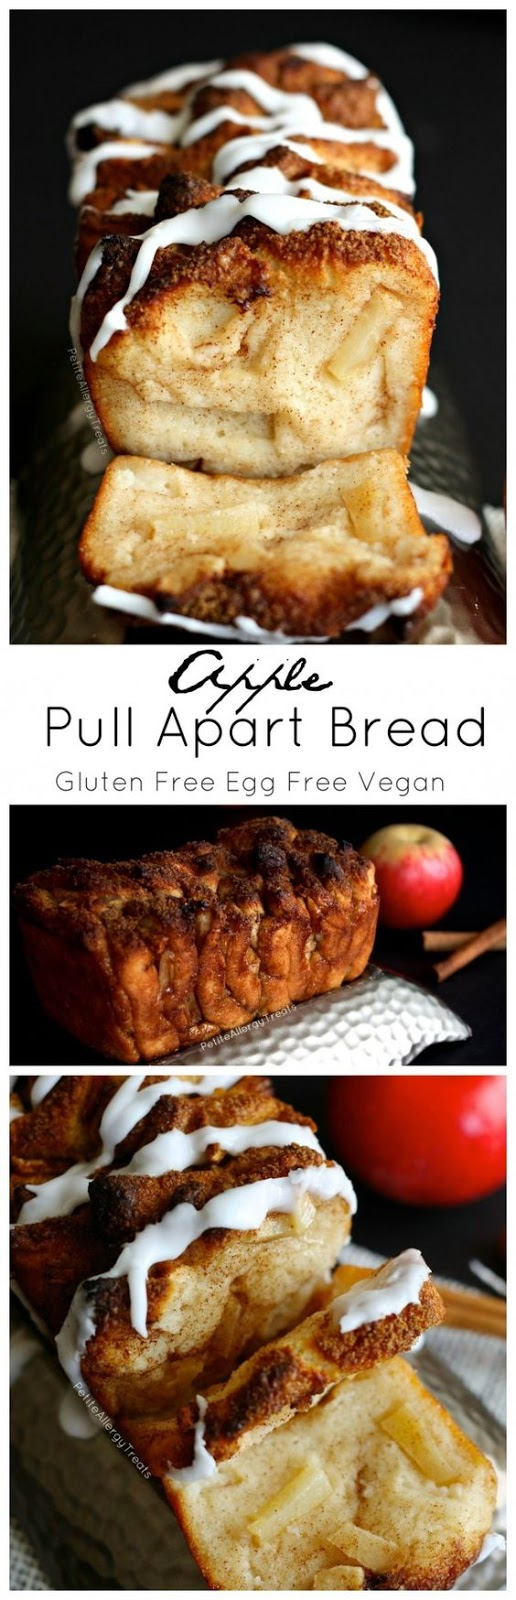 APPLE PULL APART BREAD (GLUTEN FREE VEGAN)